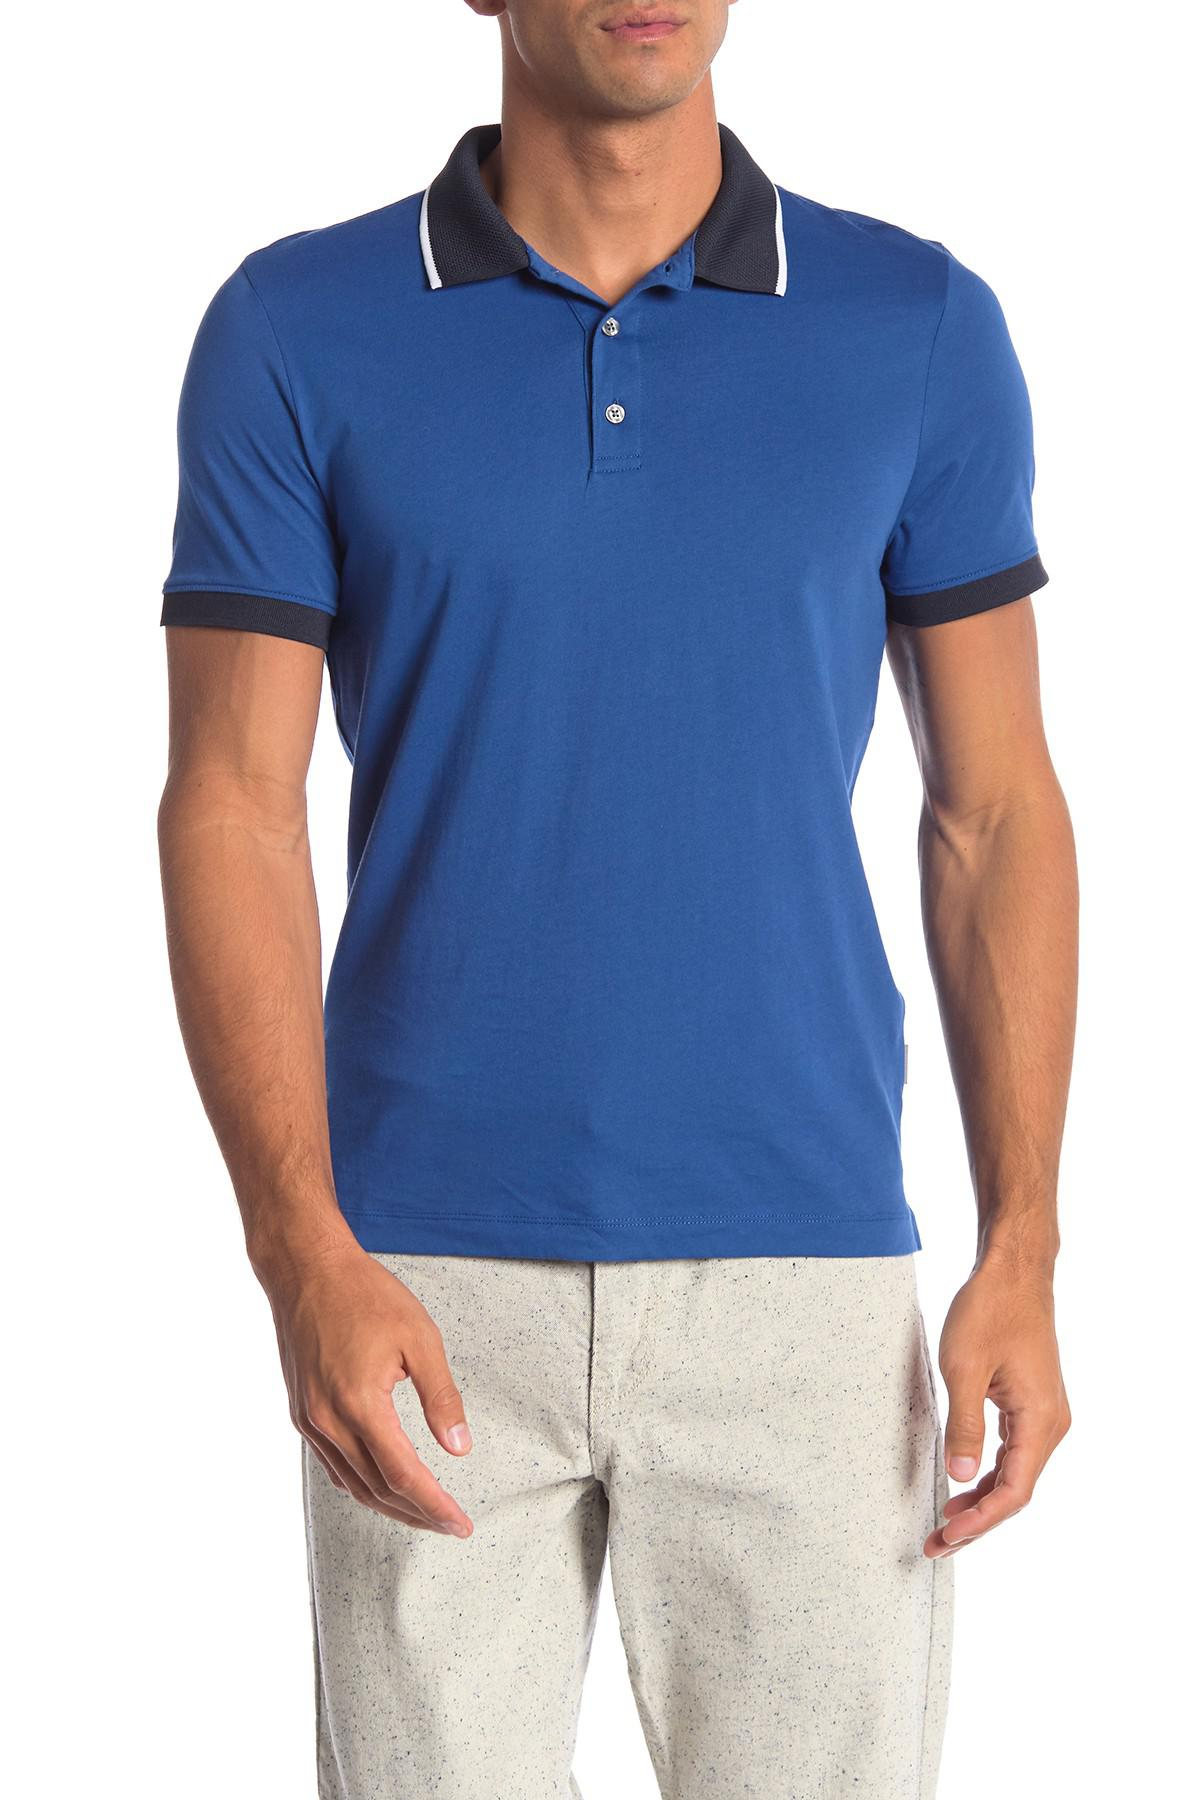 7ae8d4f01d Lyst - Perry Ellis Colorblock Short Sleeve Polo in Blue for Men ...